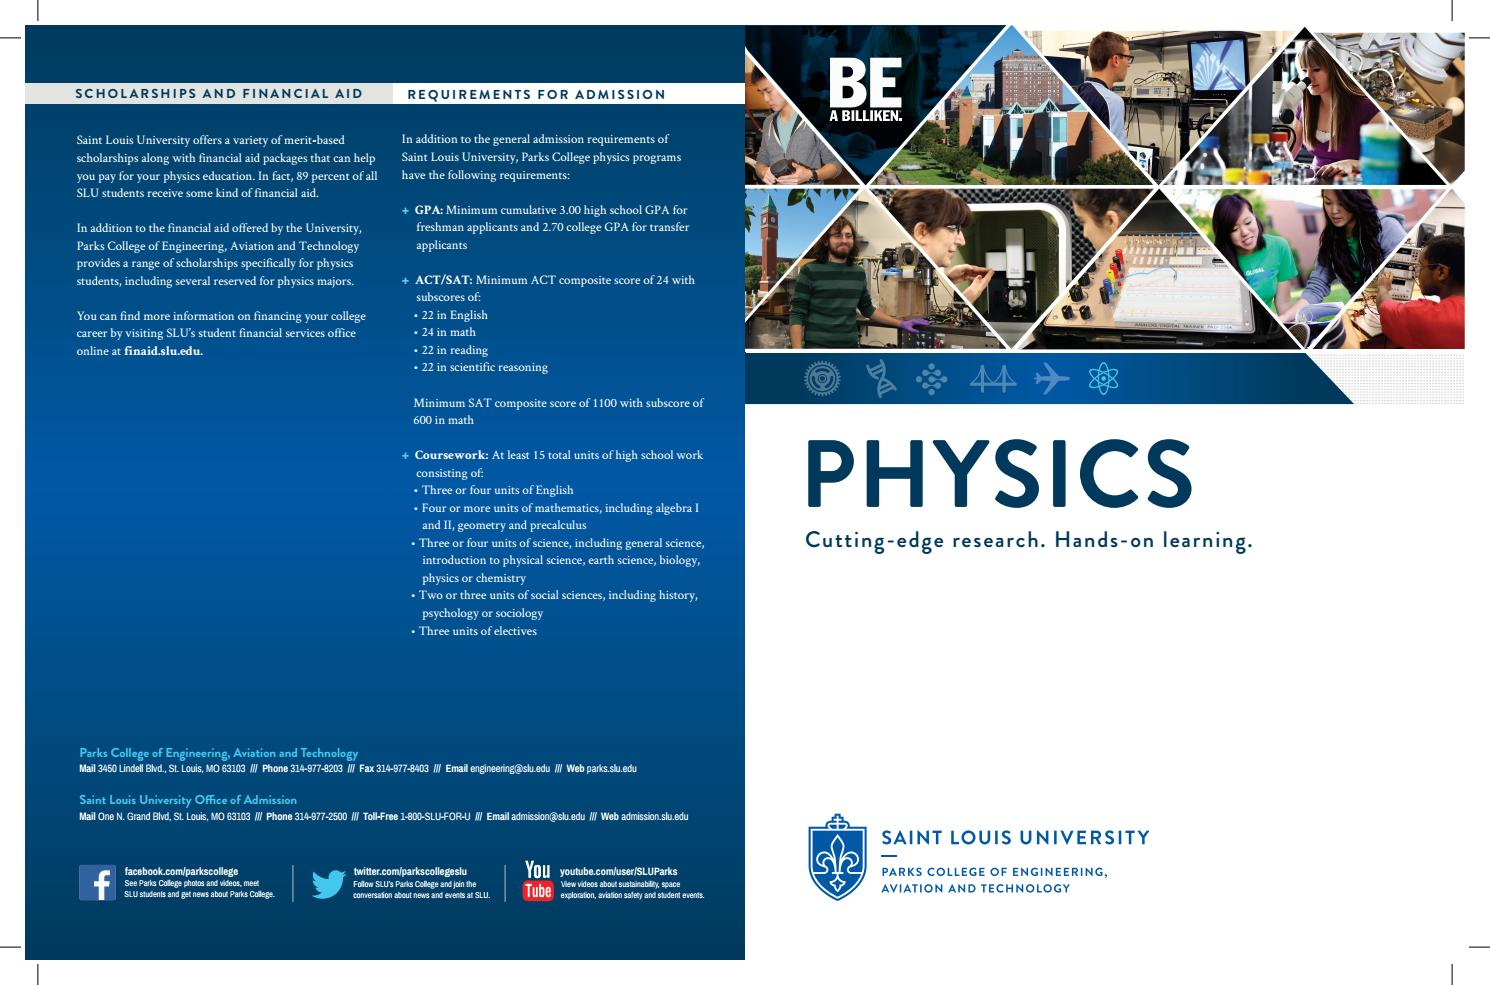 Department of Physics Brochure by Parks College of Engineering